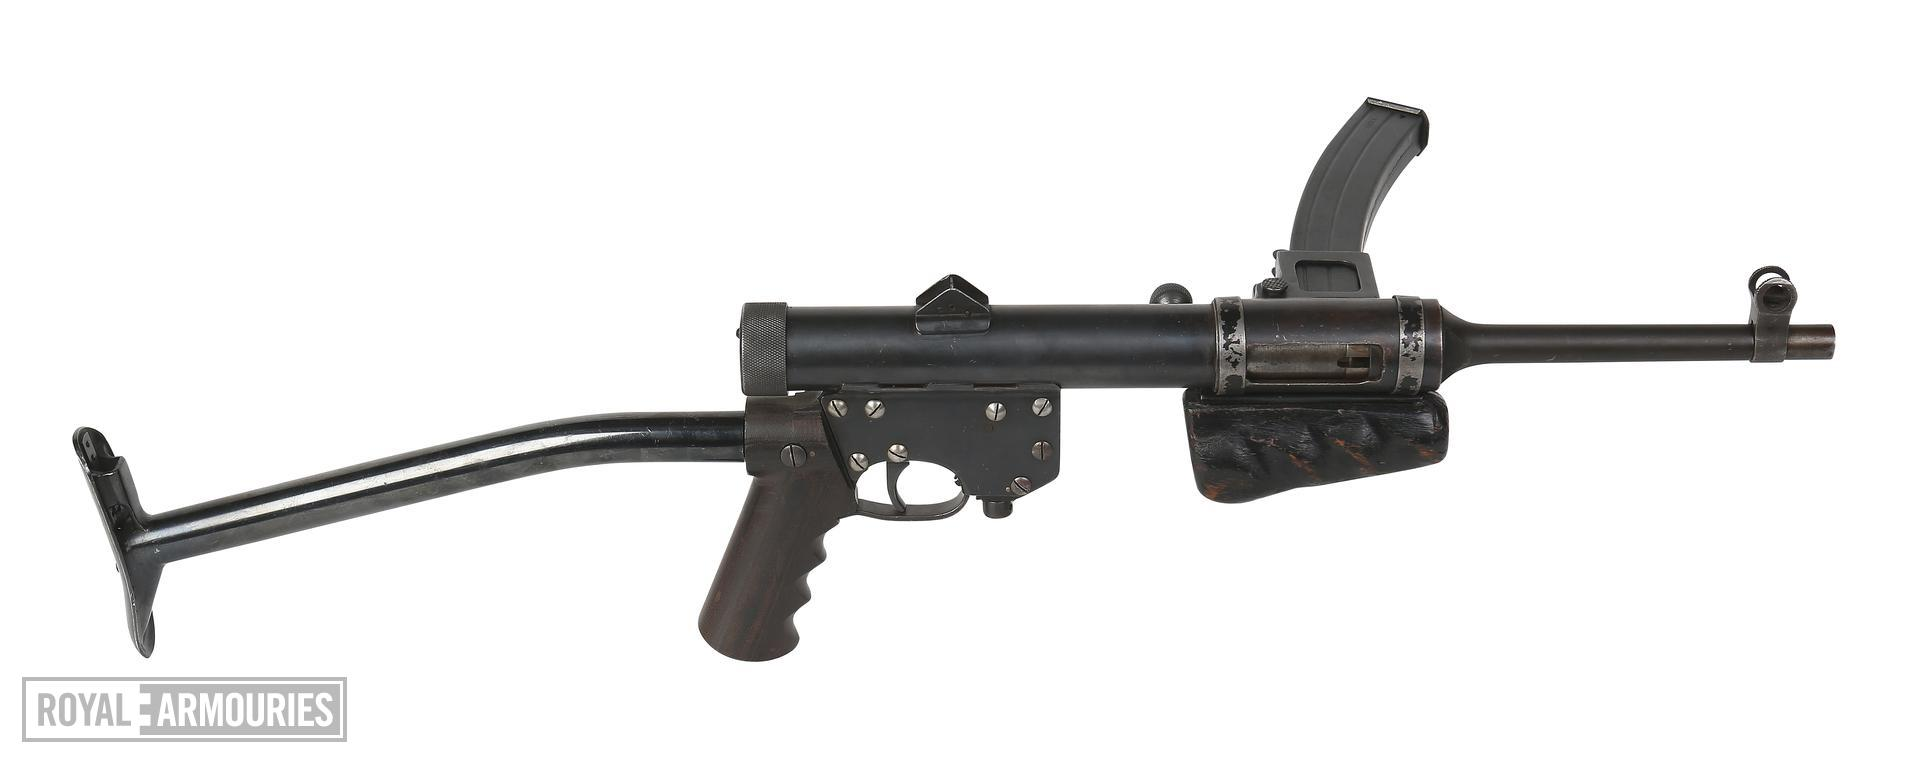 Centrefire automatic submachine gun - Lanchester light model 2 Experimental